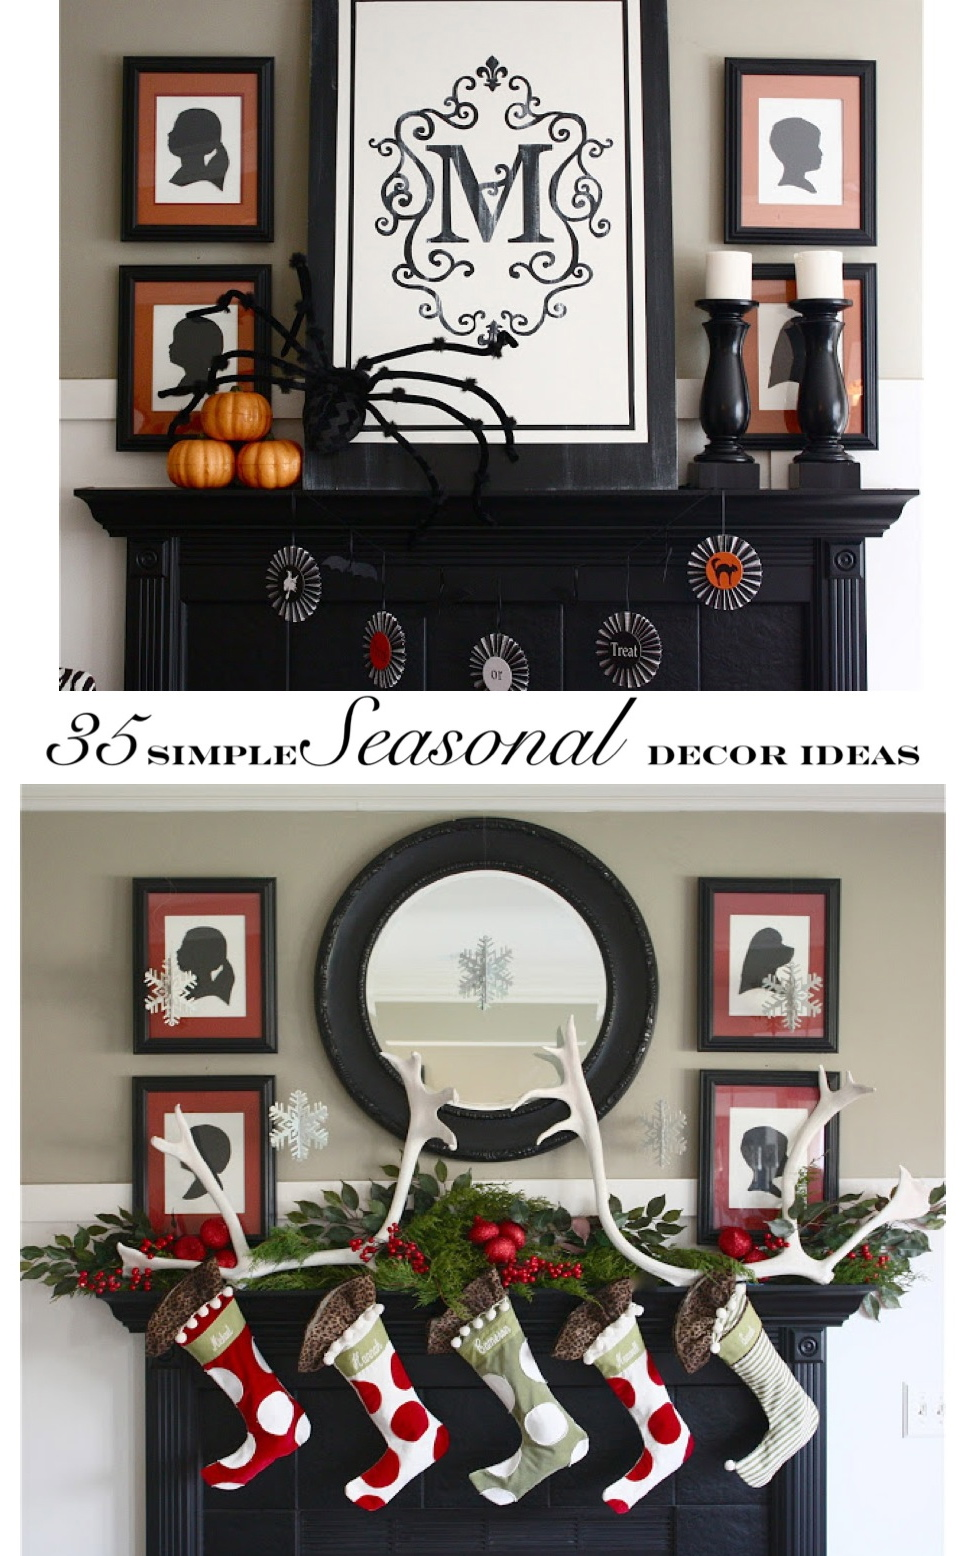 Charmant 35 Simple Affordable Seasonal Decorating Ideas